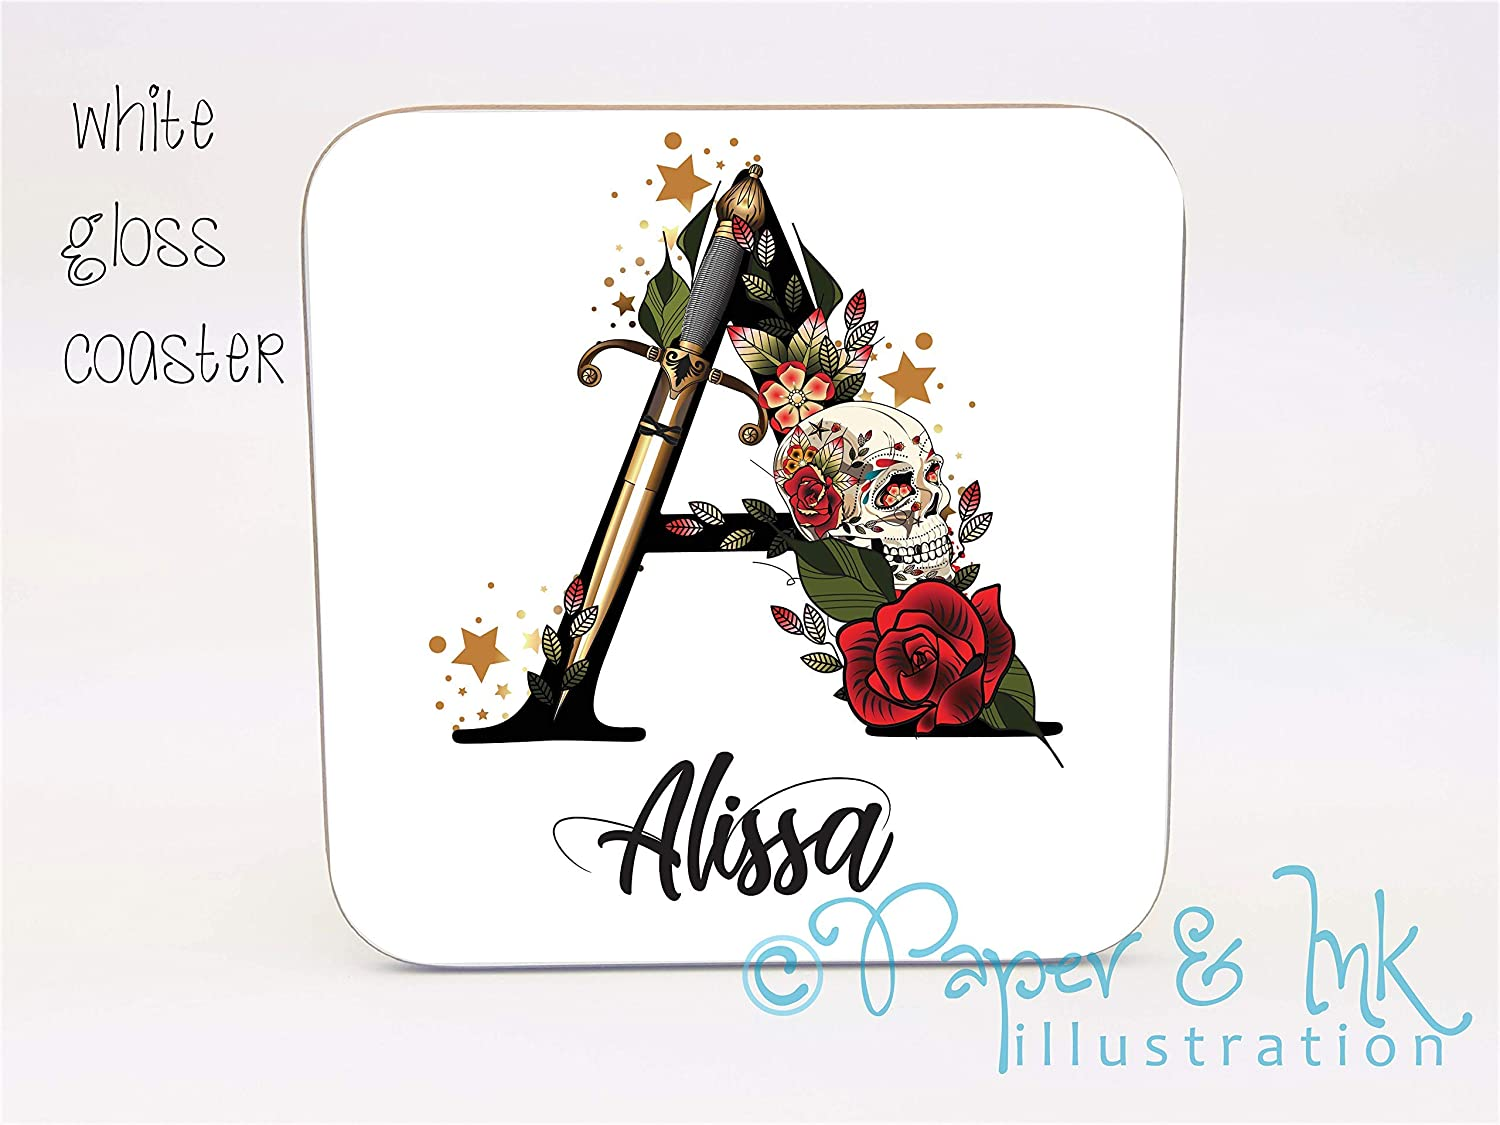 personalised stocking filler small gift coaster name initial letter gift idea skull roses letters stars